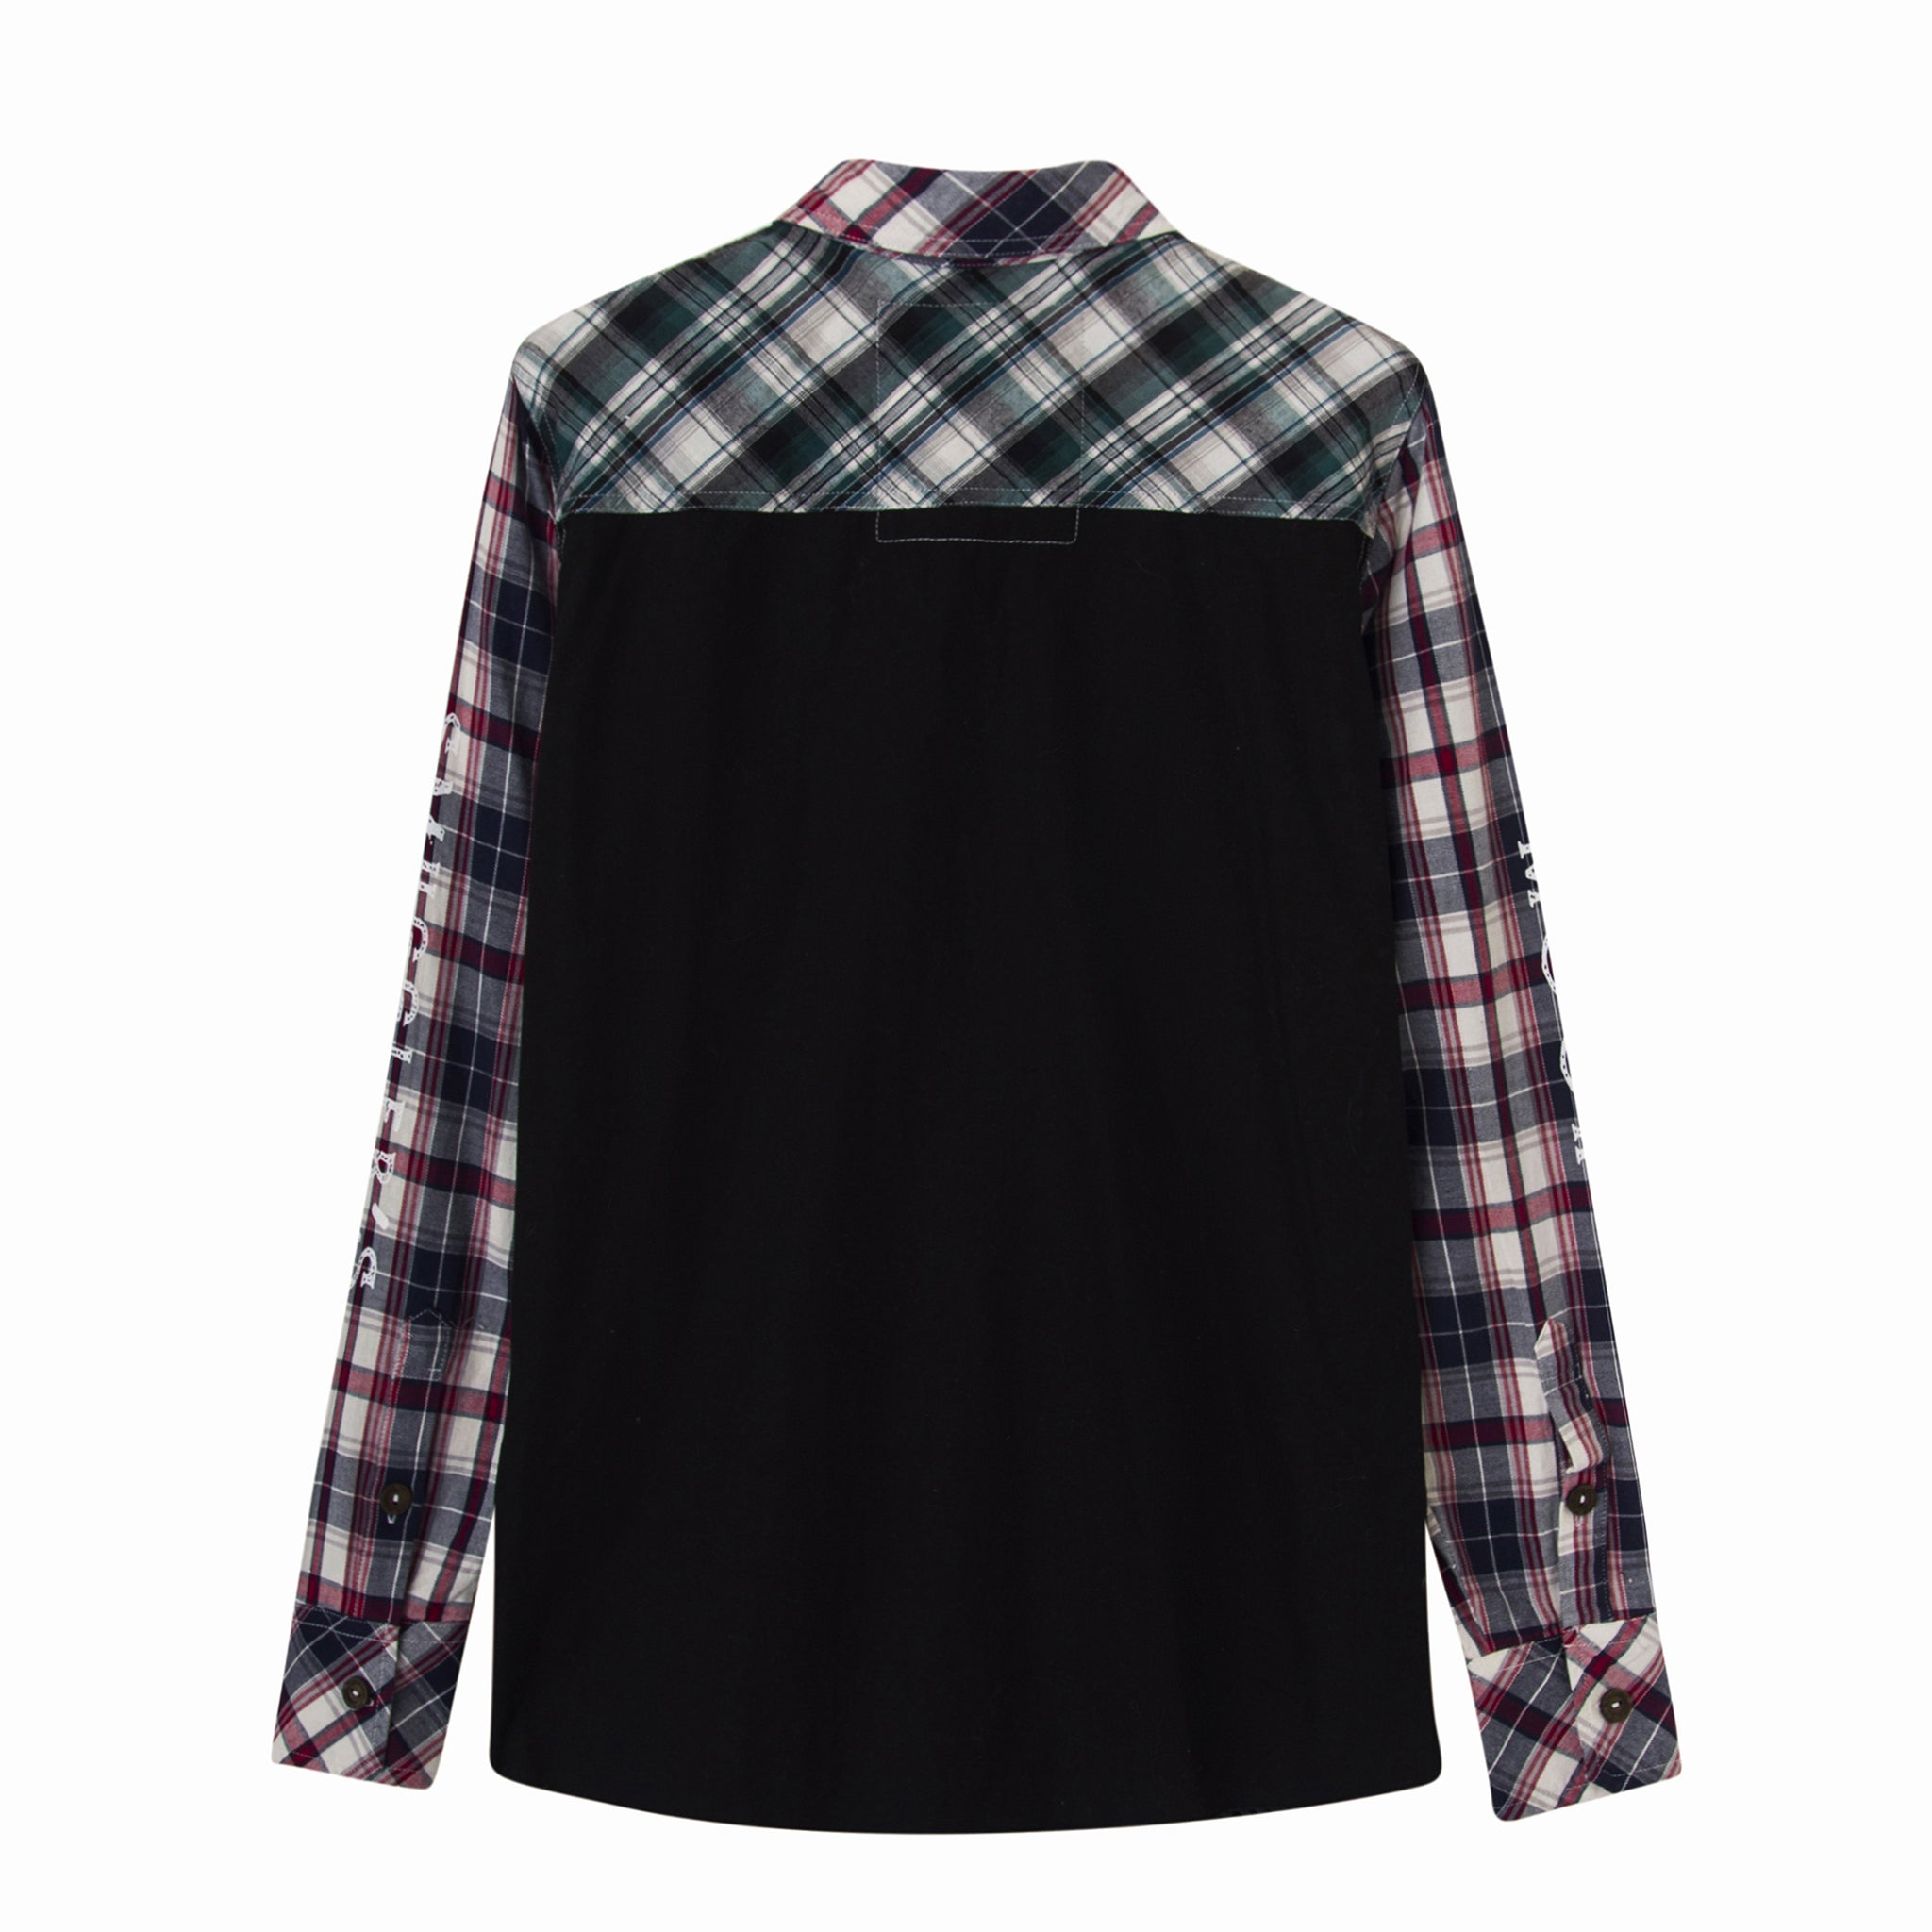 Blackout Skate Check Shirt